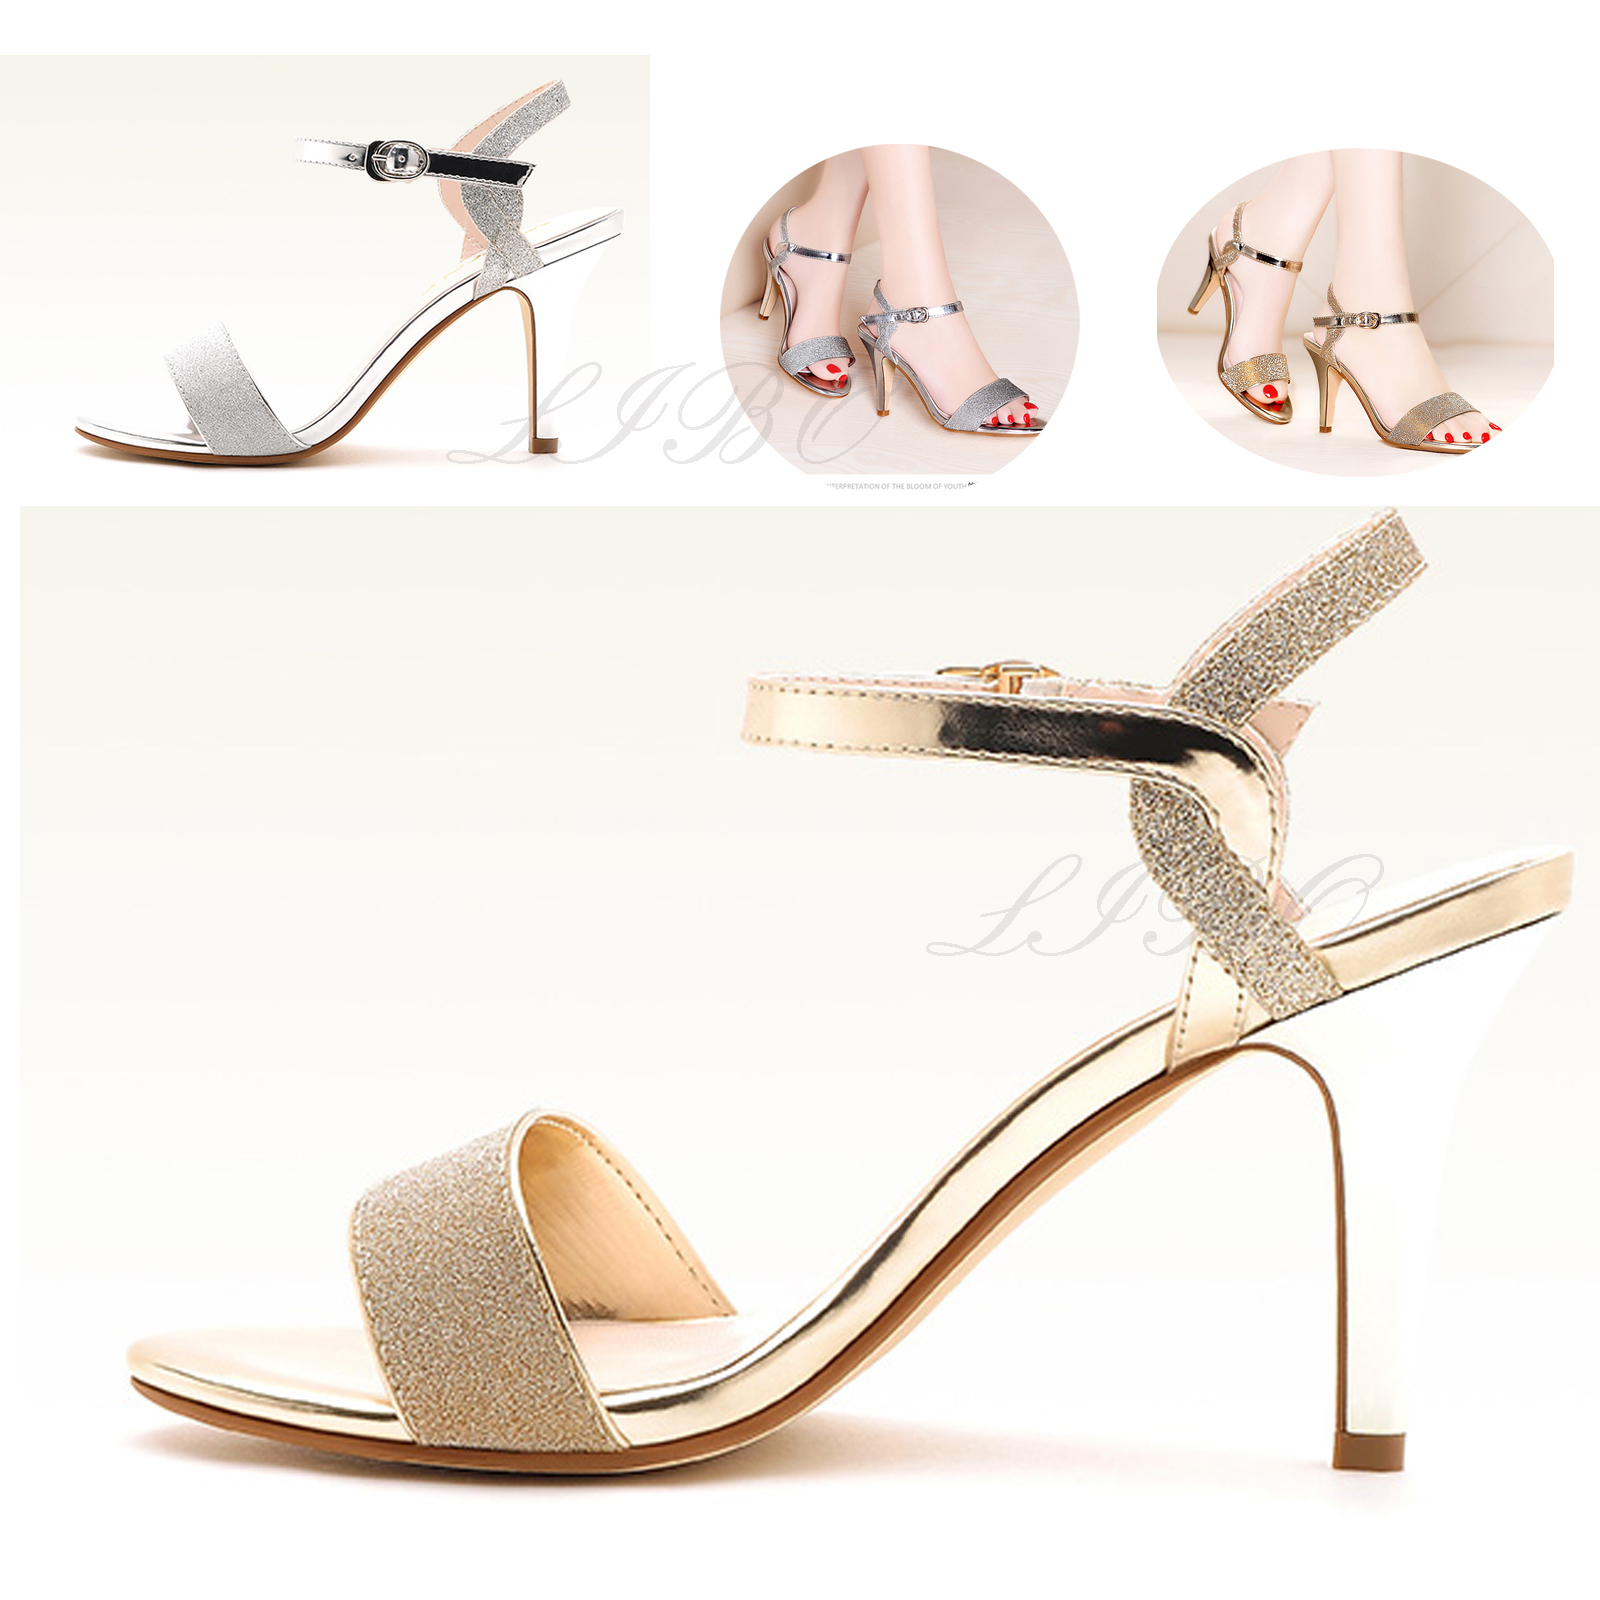 f6418df4f6c6 Women Party Sandals Summer Thin Women s Sandals High Heels Shoes High Heel  Sandalias Silver Gold Women s Dress Shoes